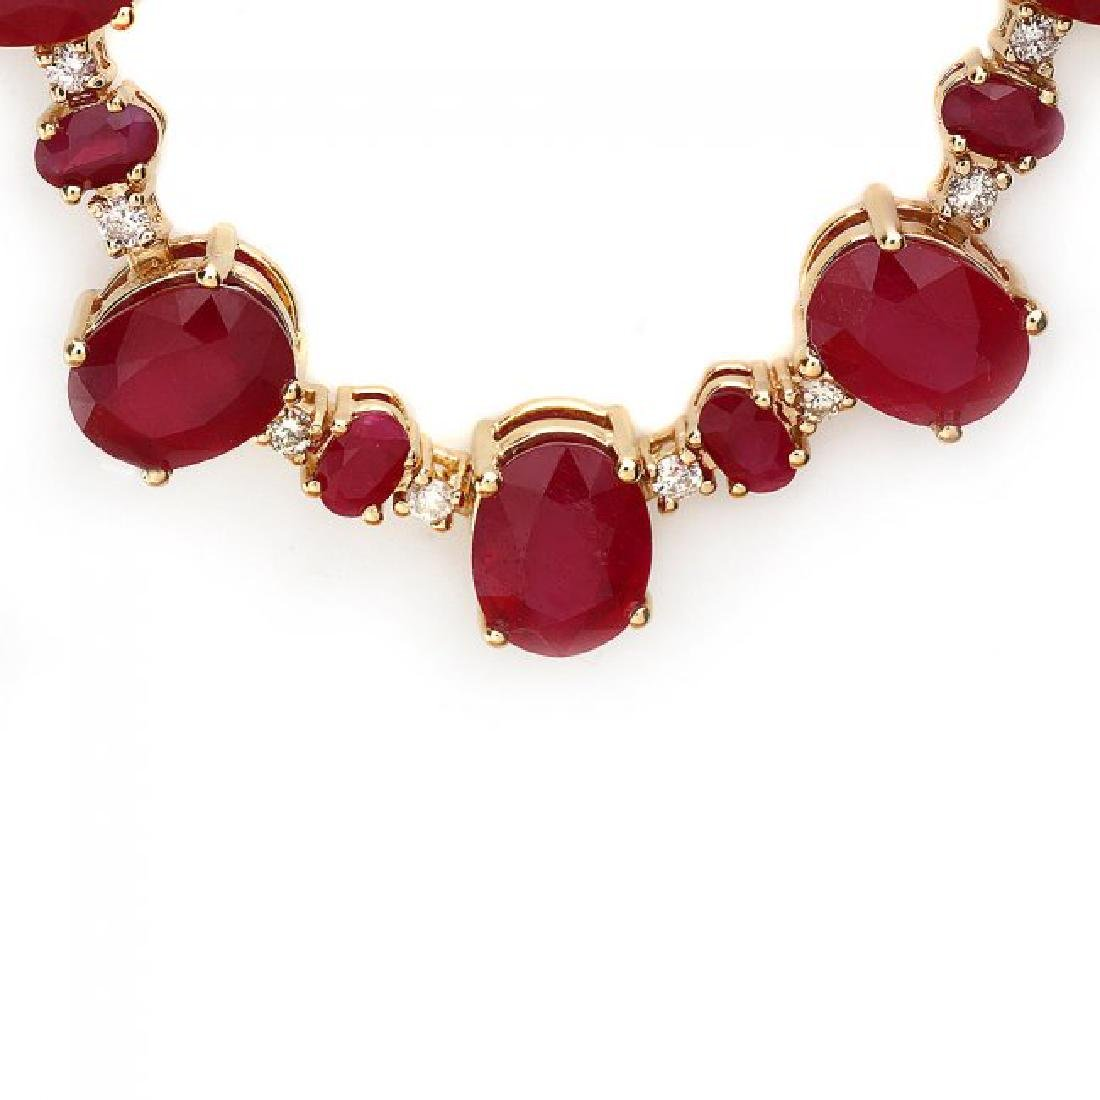 14k Yellow Gold 69ct Ruby 1.75ct Diamond Necklace - 2